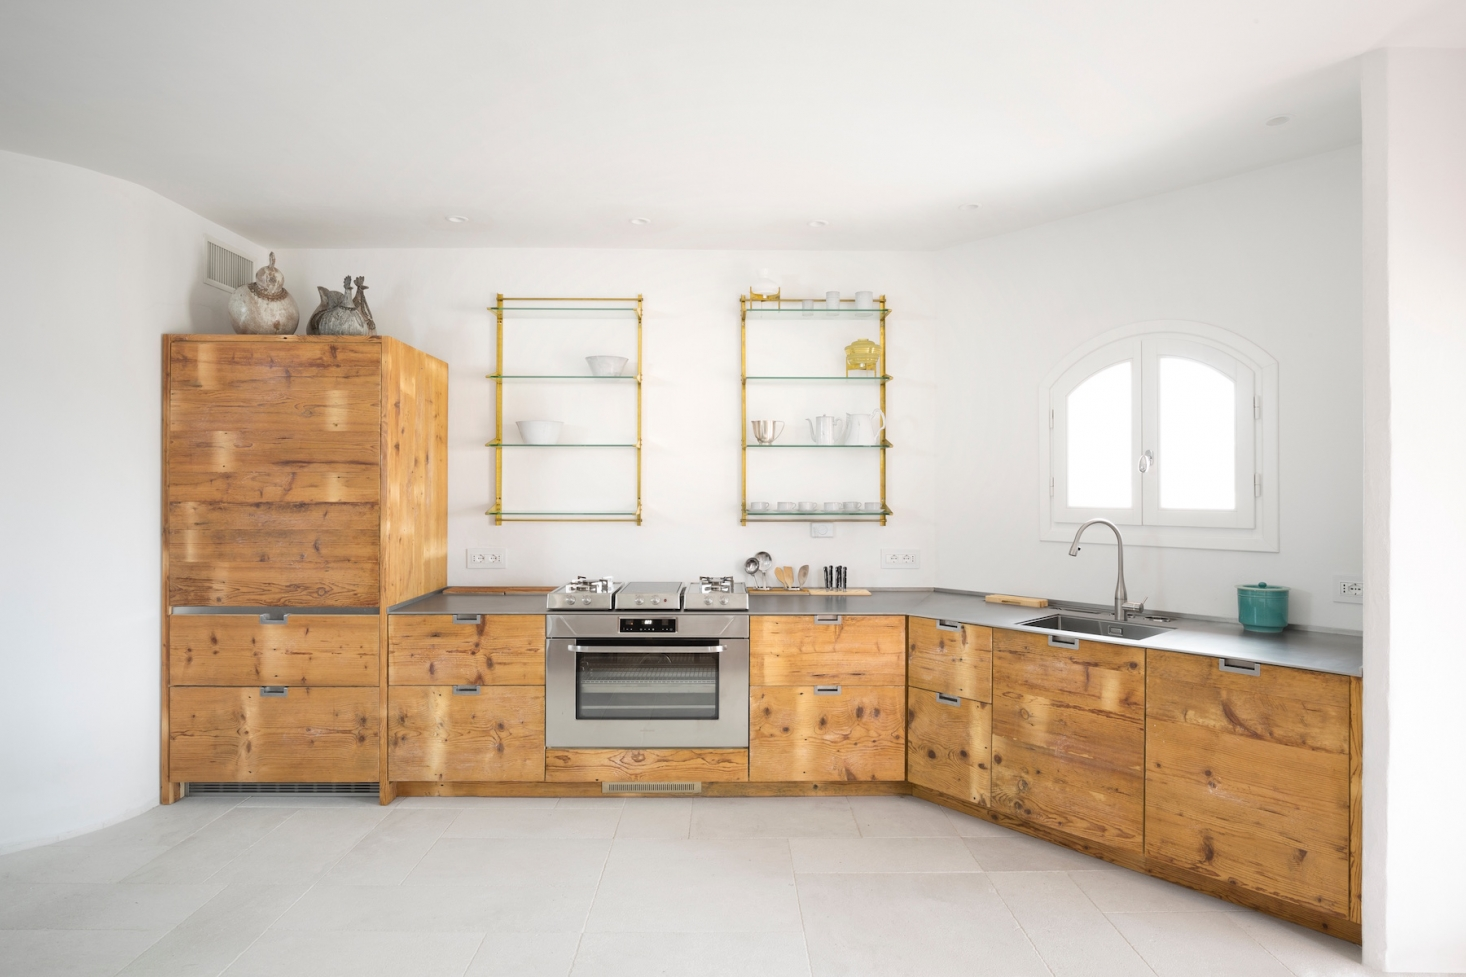 Kitchen of the Week: A Katrin Arens Design in Sardinia with 250-Year-Old Wood